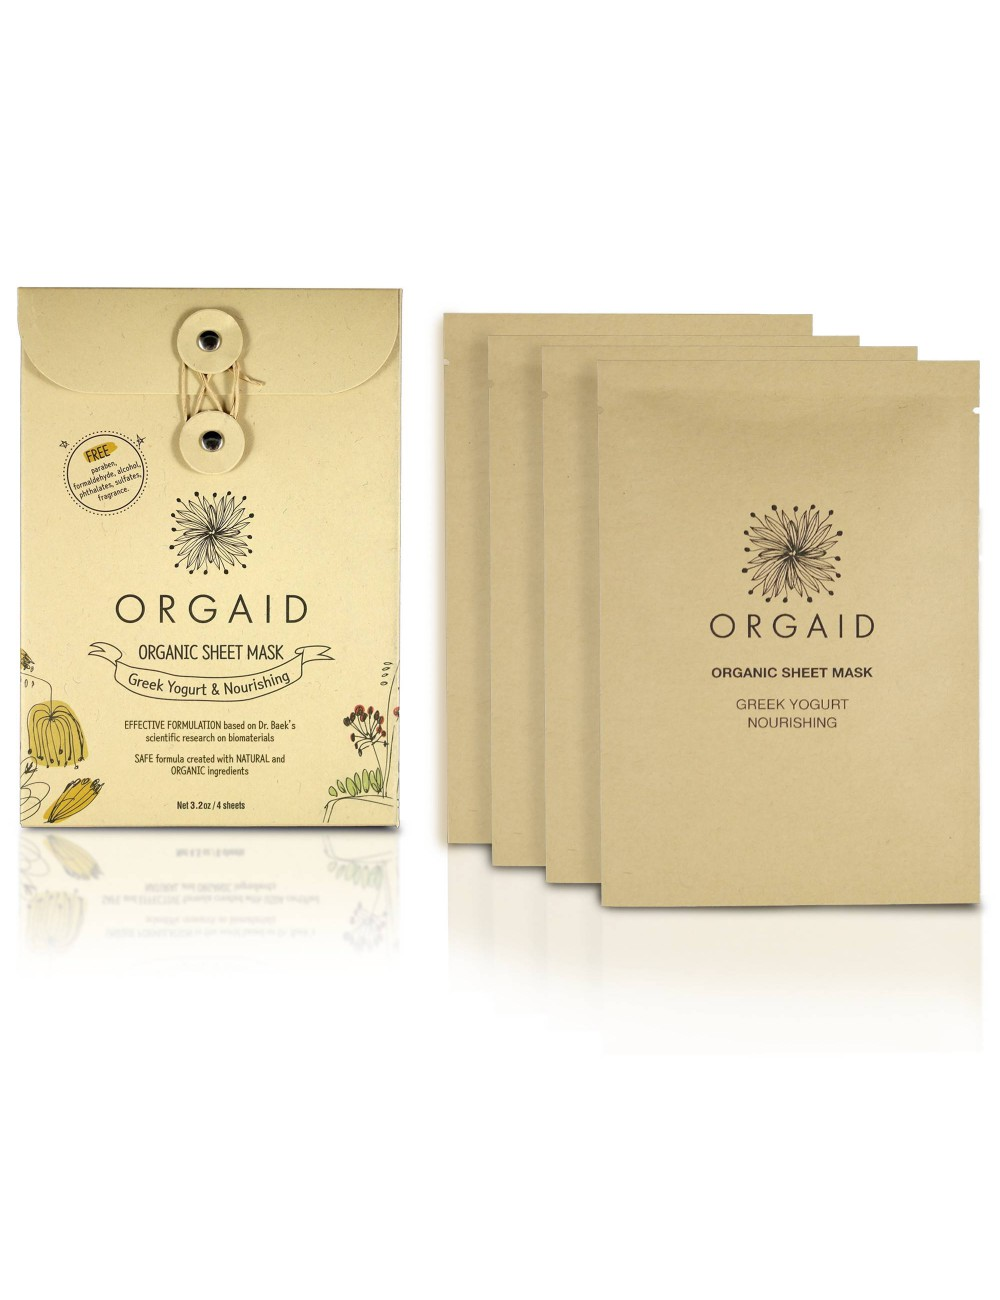 ORGAID Organic Sheet Mask - Greek Yogurt & Nourishing 4 Sheets